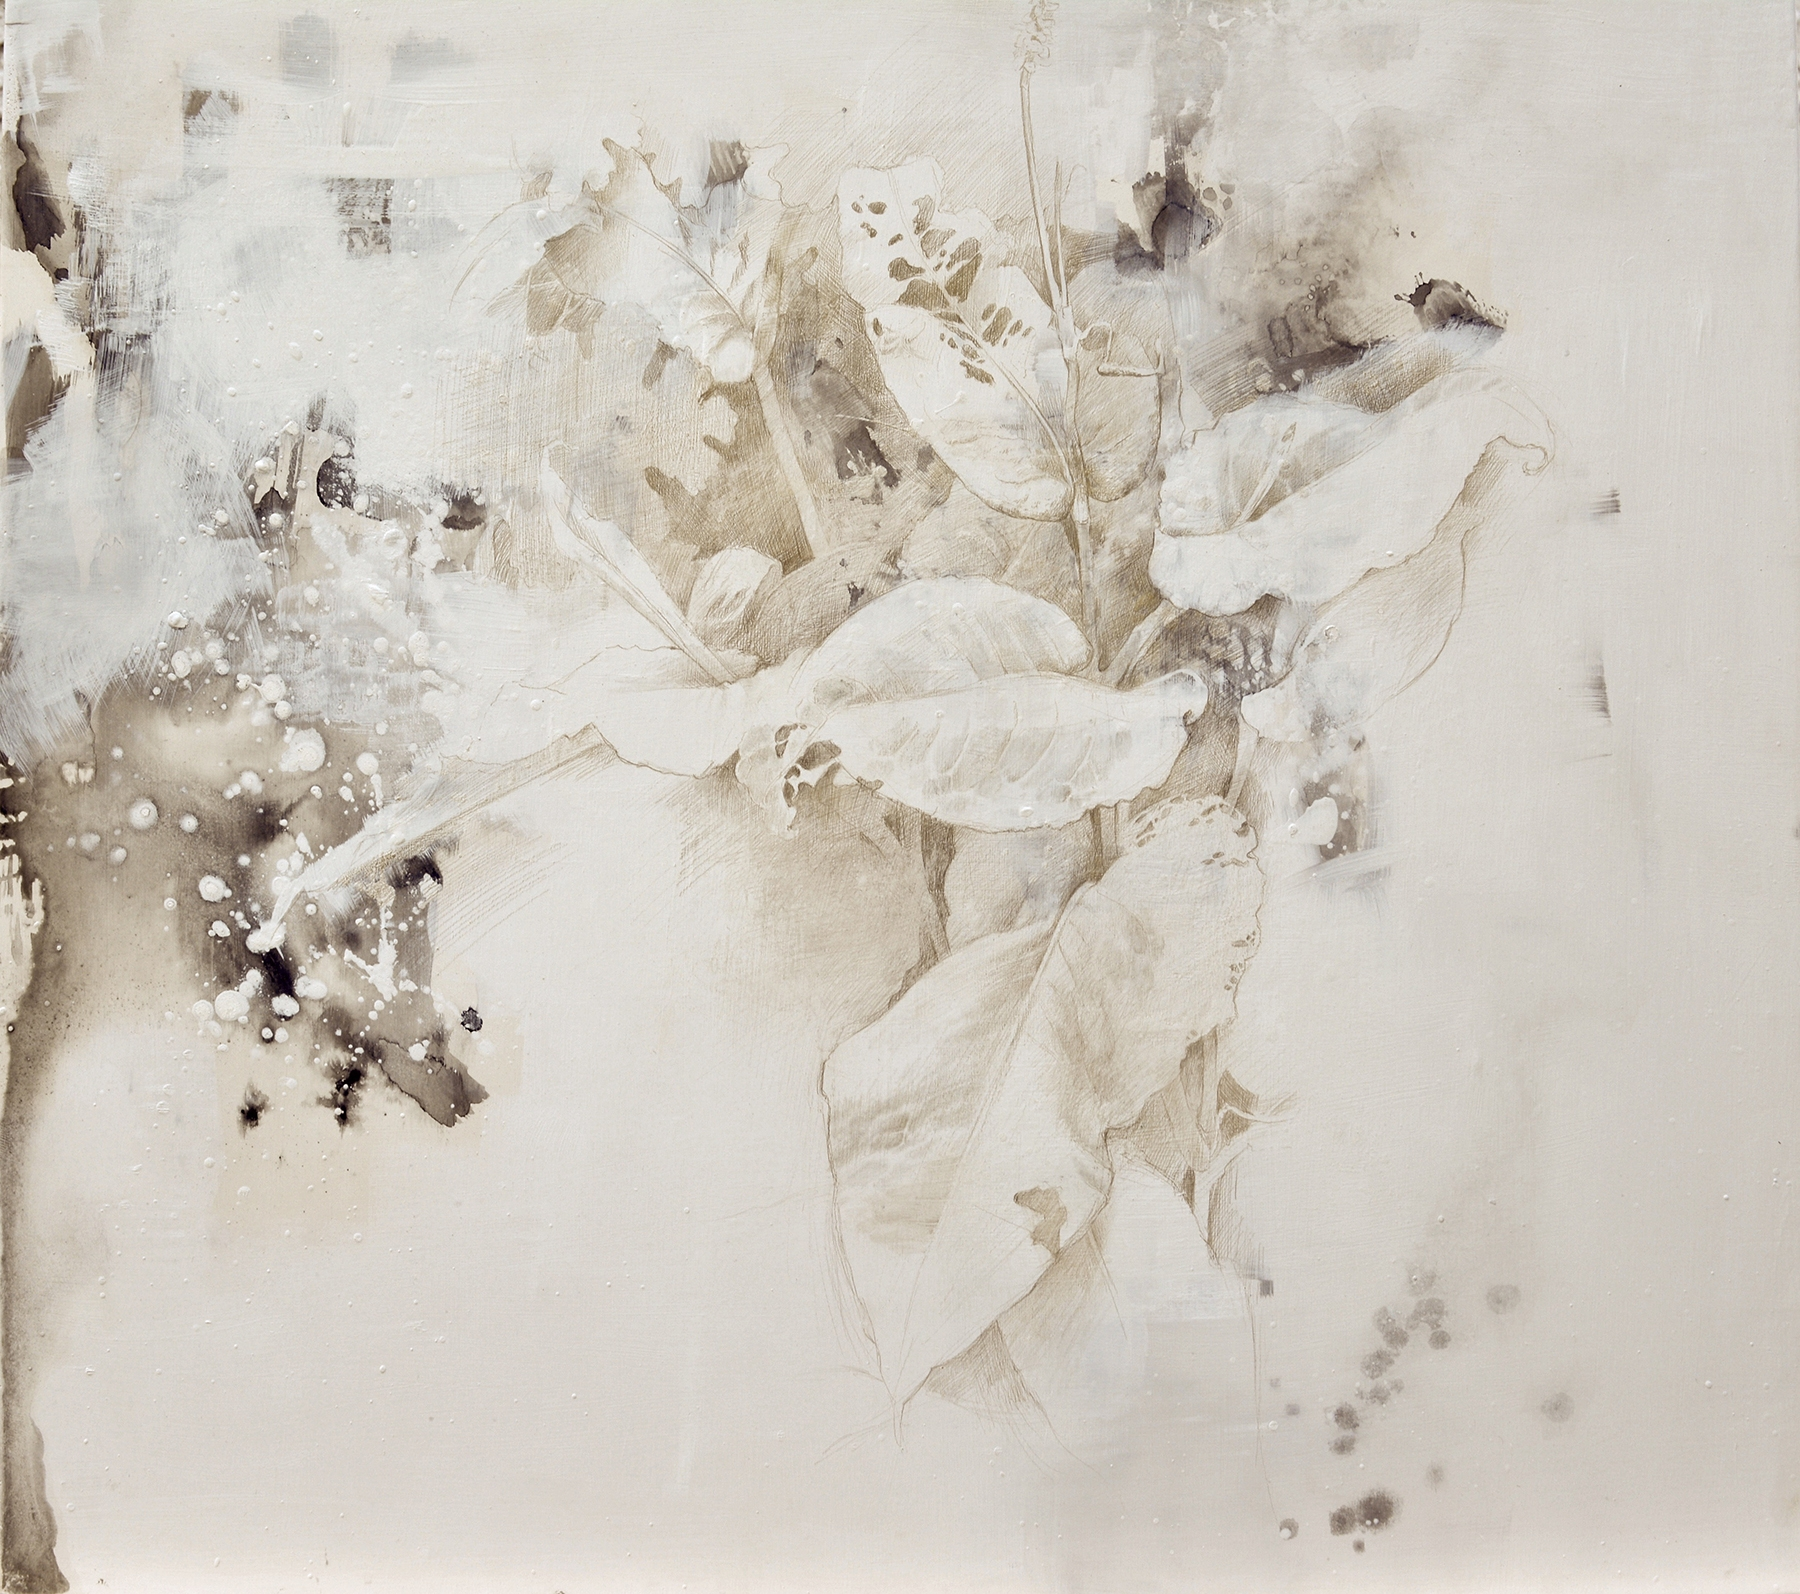 DALE O. ROBERTS  INSECT TAPESTRY  Silverpoint 16 x 18  $2,200.